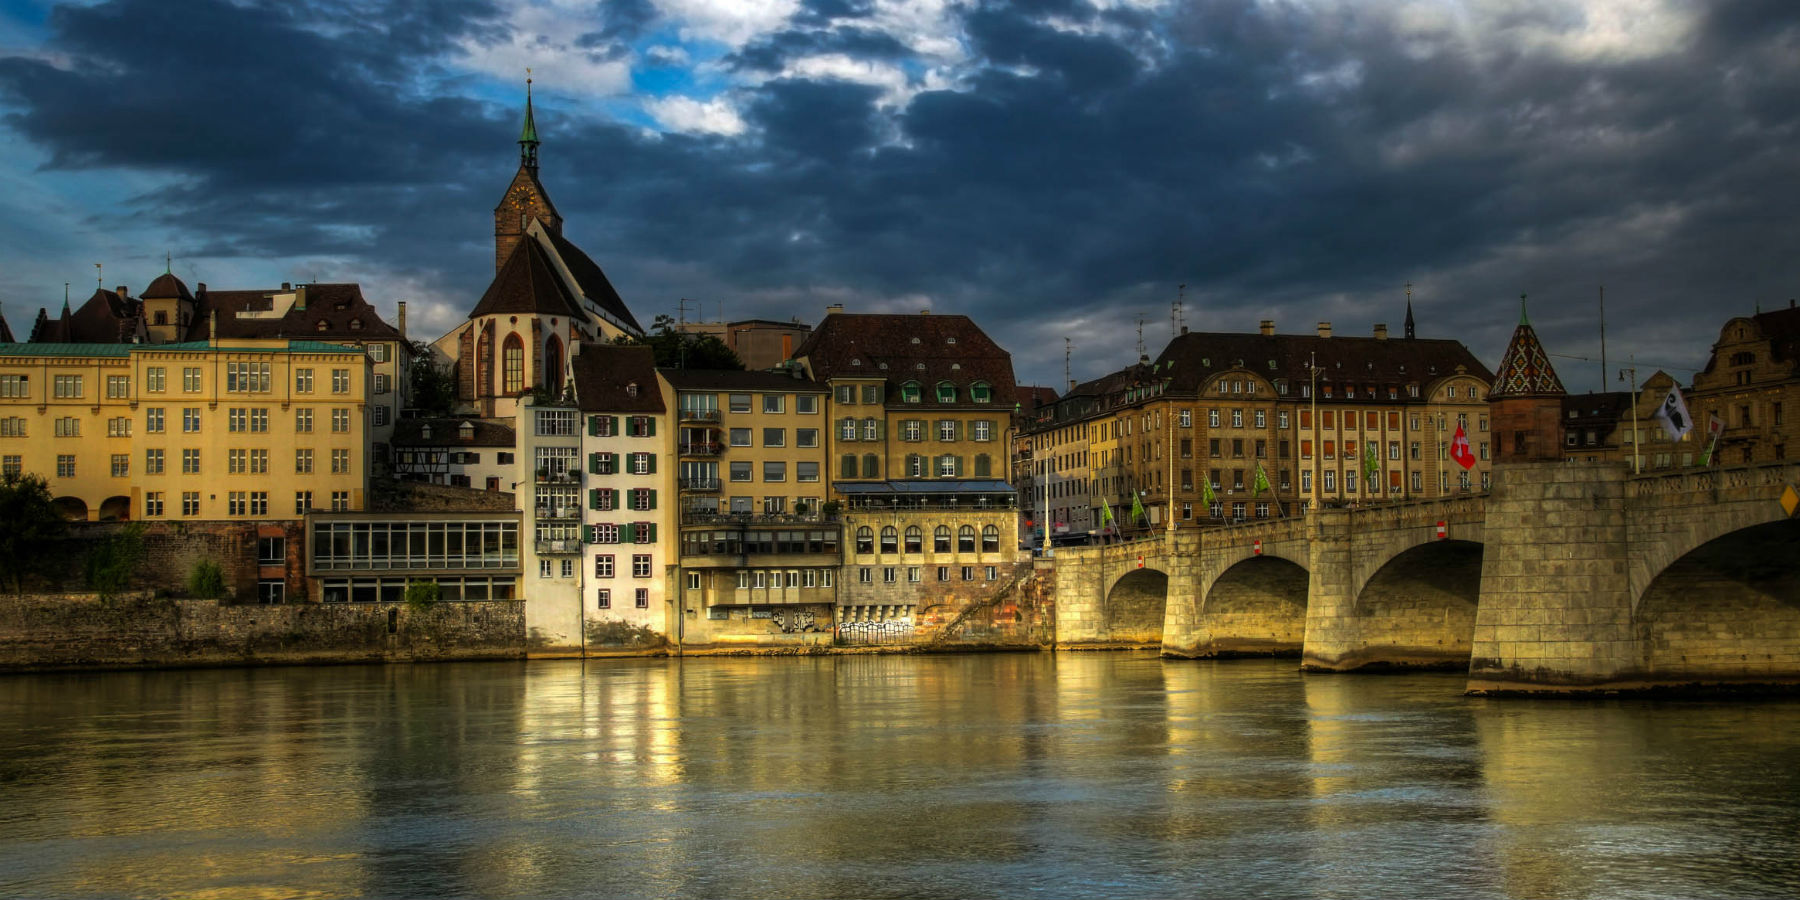 Basel old town at Dusk from across the river